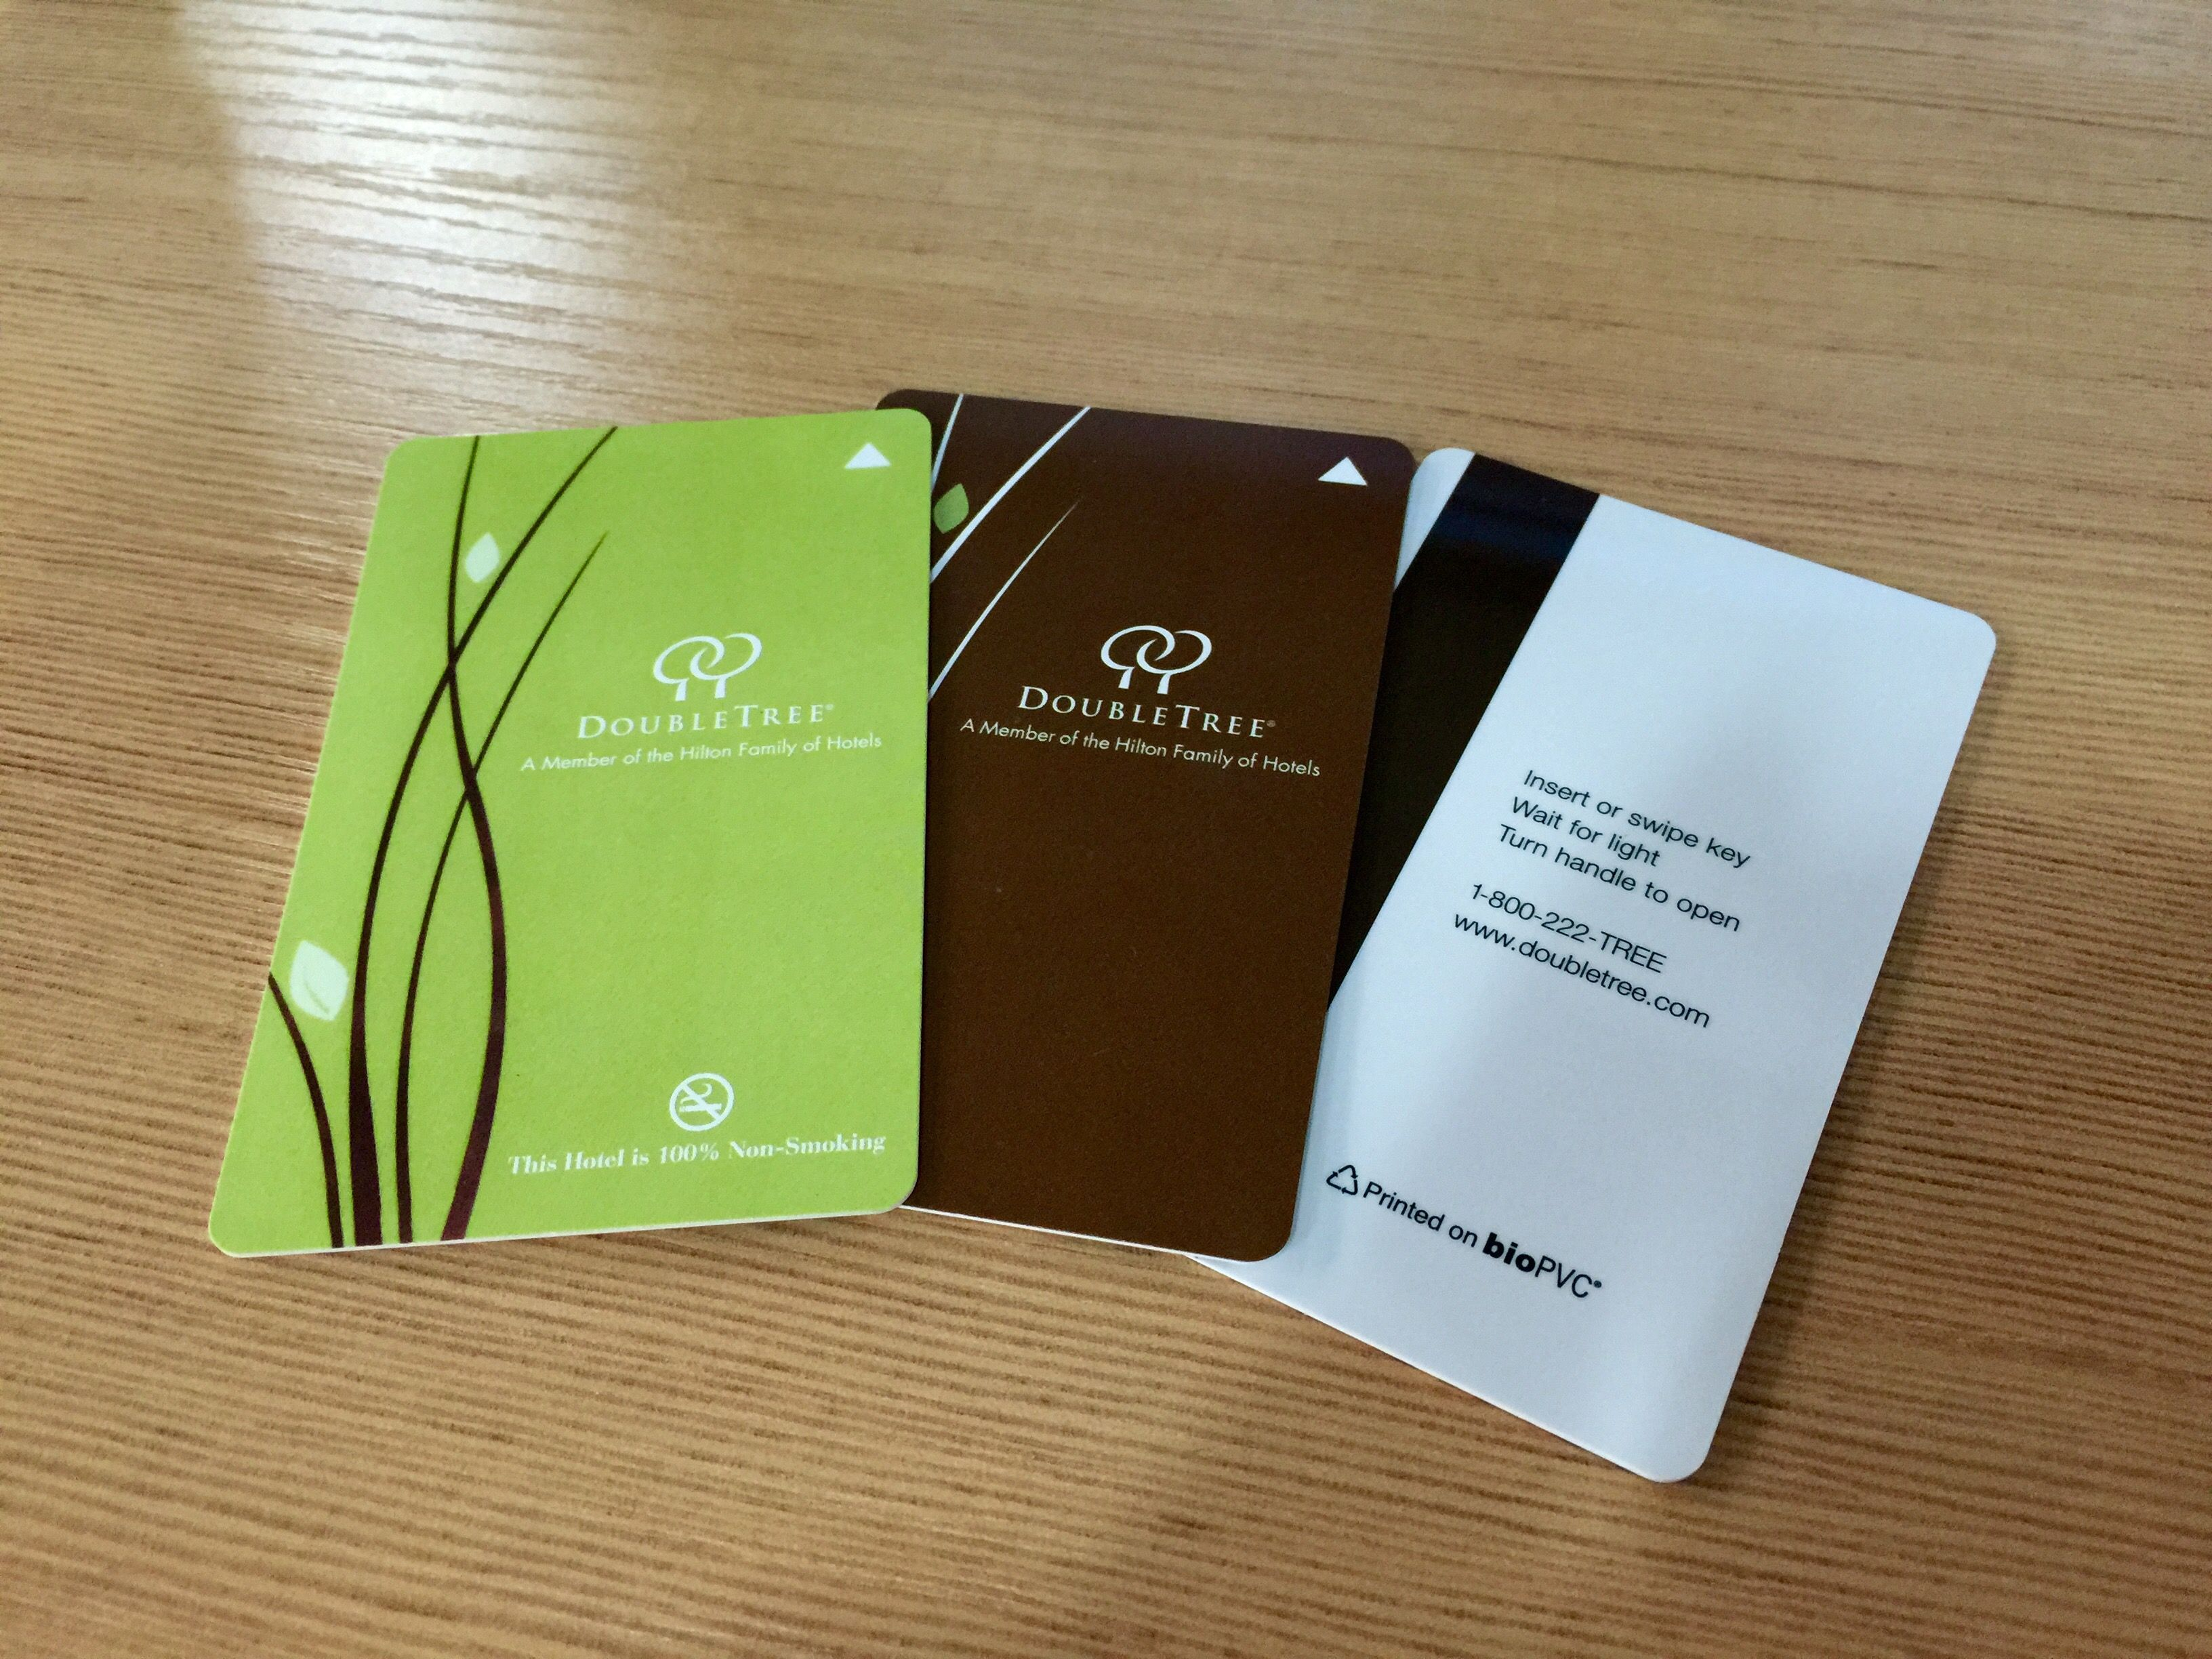 Biopvc Key Card For Double Tree Hotel Key Cards Cards Card Making